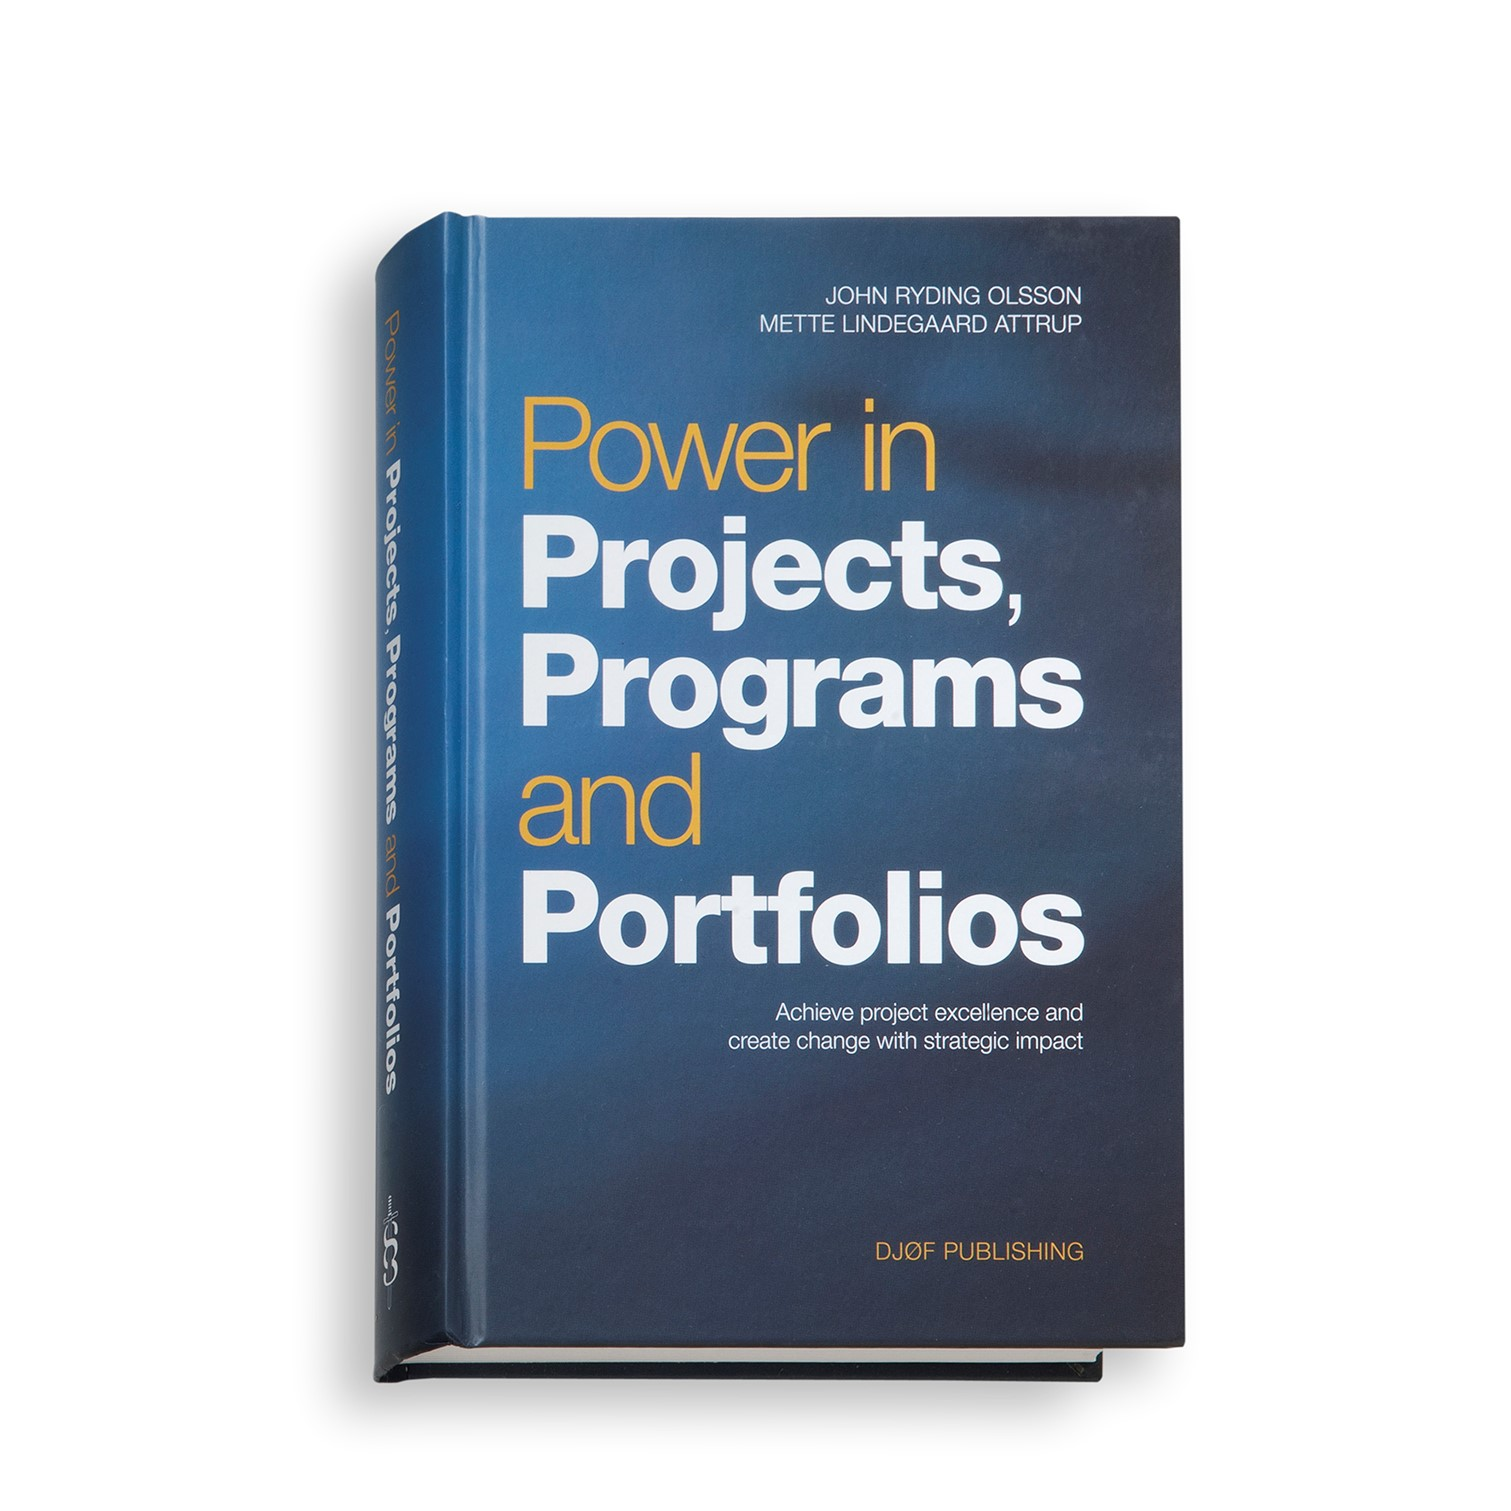 Power in Projects, Programs and Portfolios